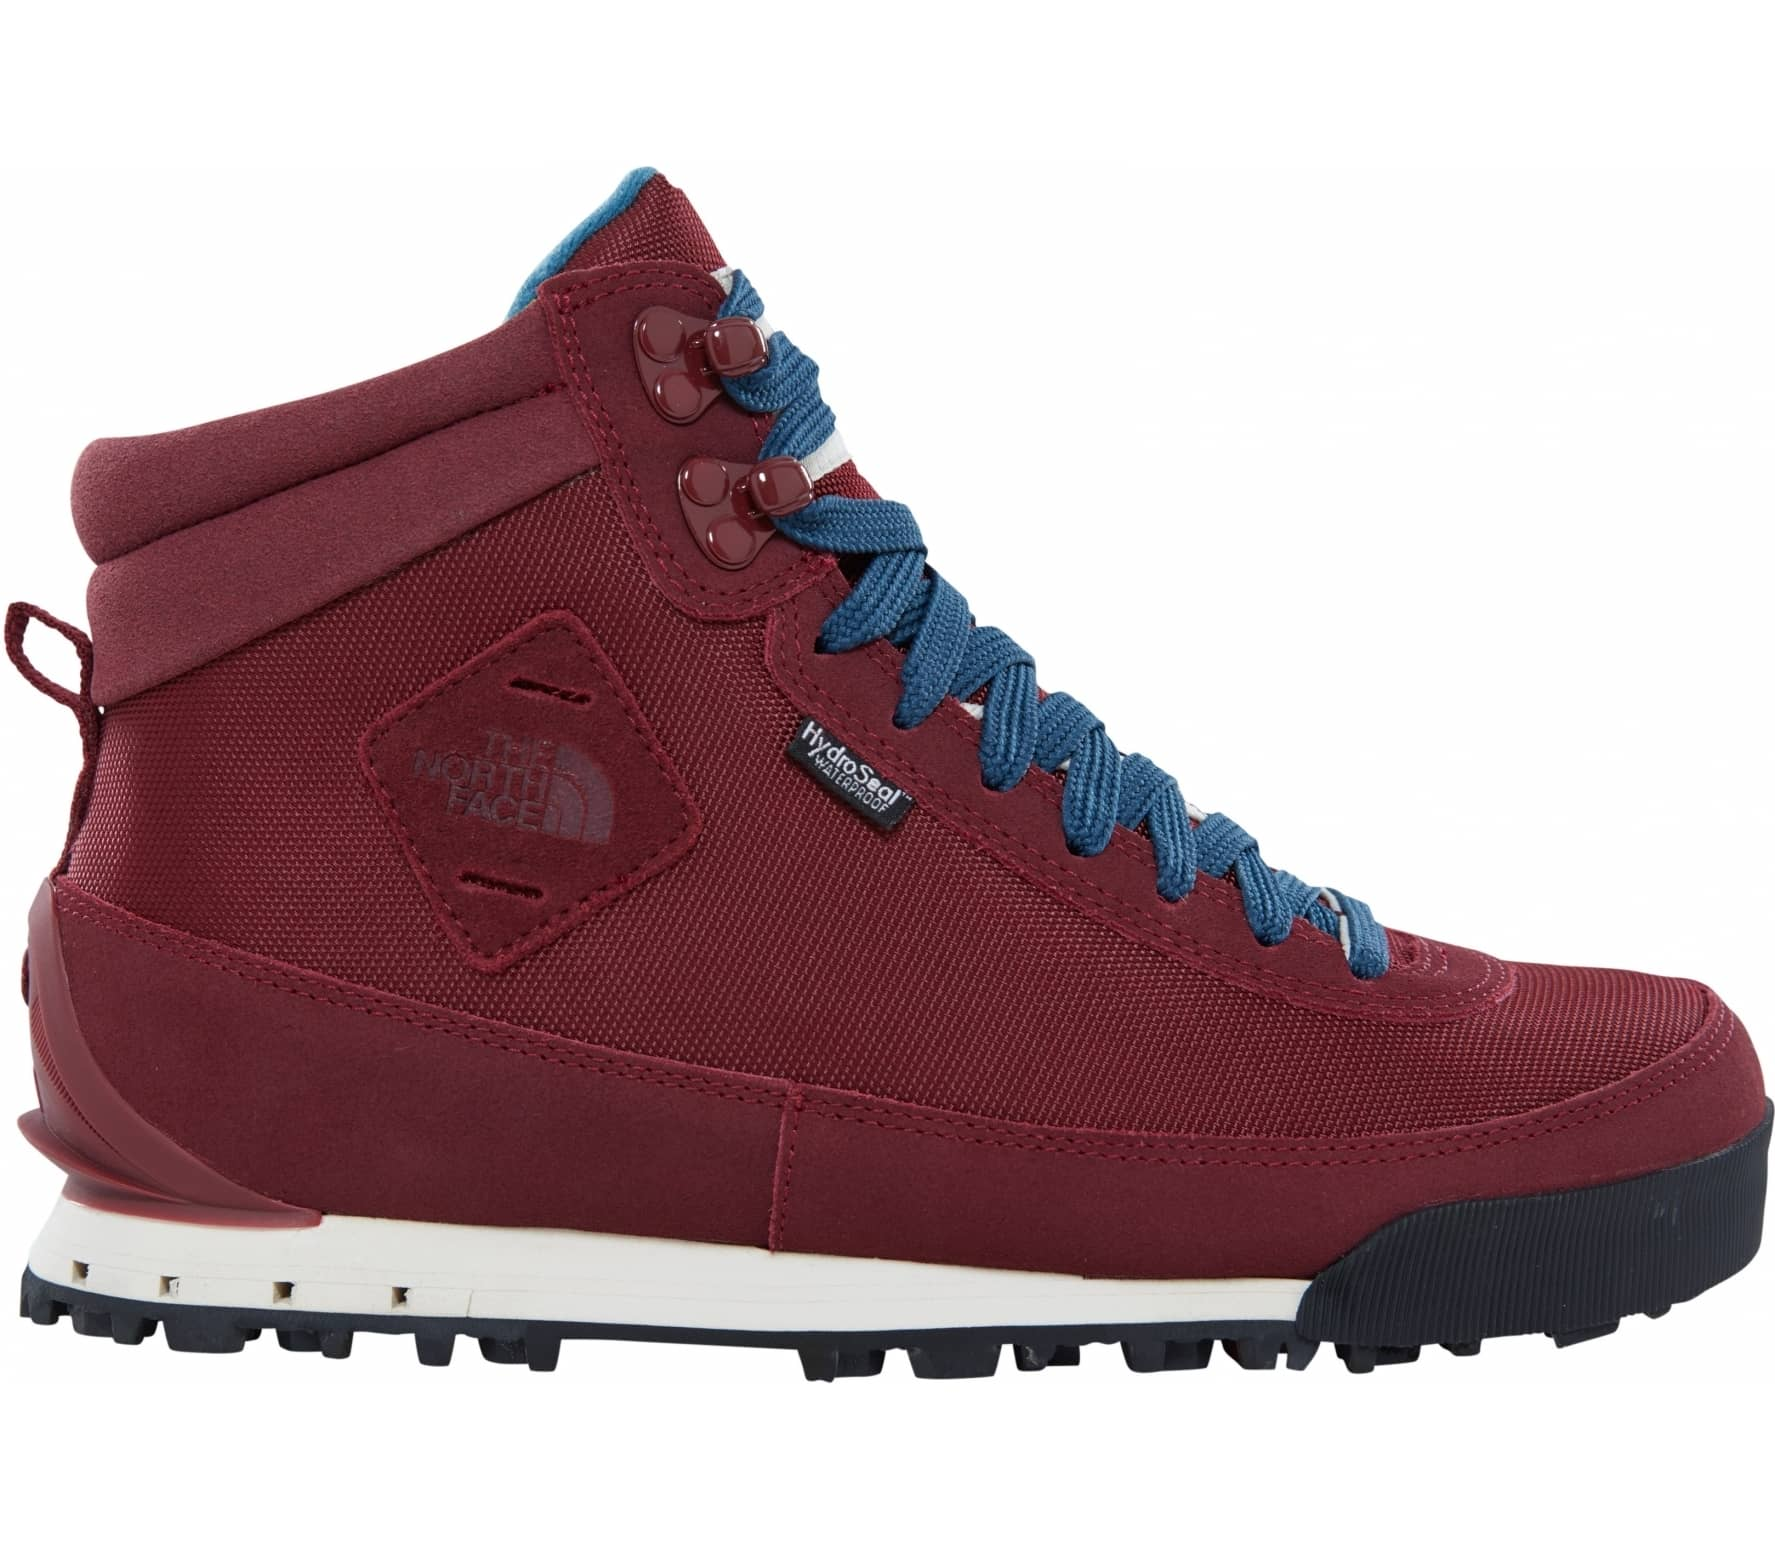 d69ce4762b The North Face Back-To-Berkeley Boot II Women